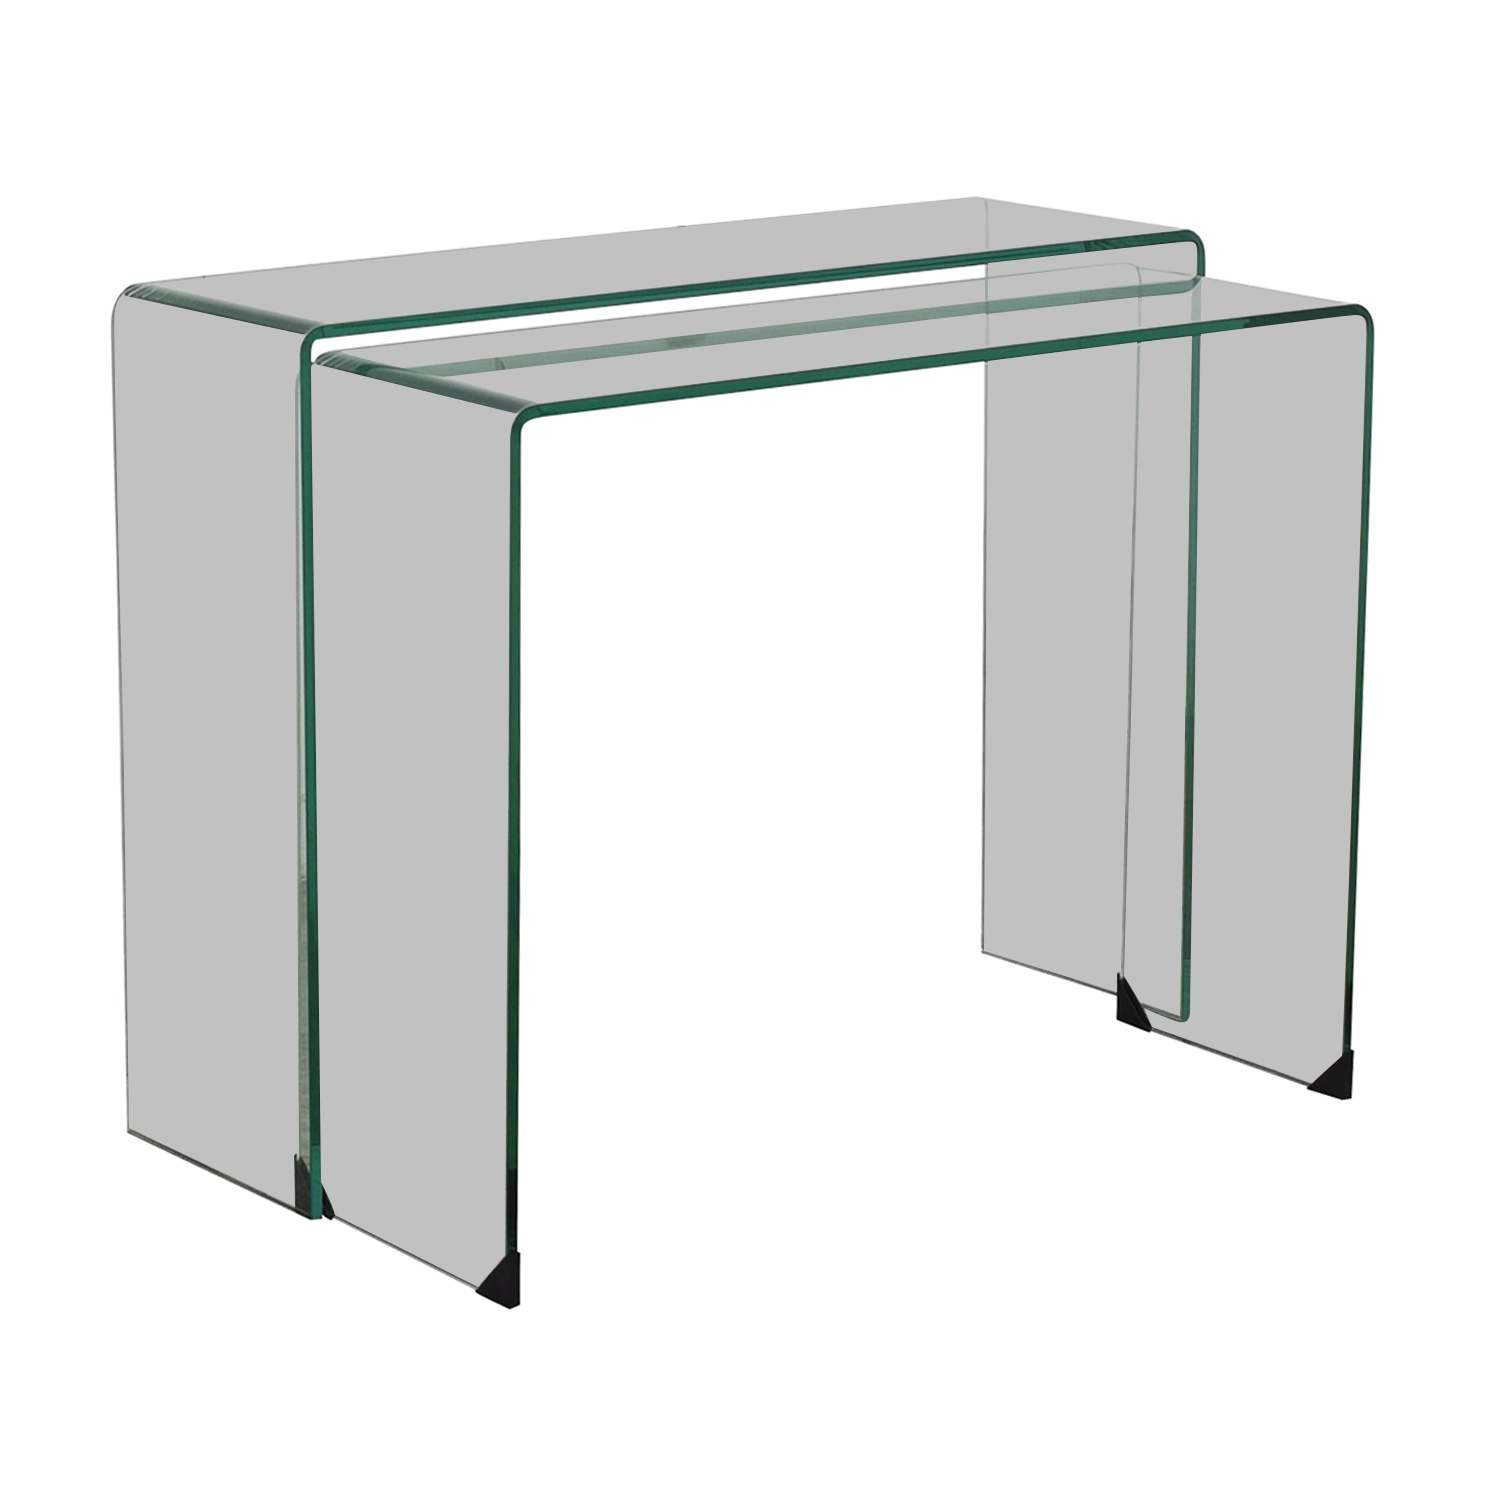 Chintaly Imports Chintaly Nesting Console Tables nyc